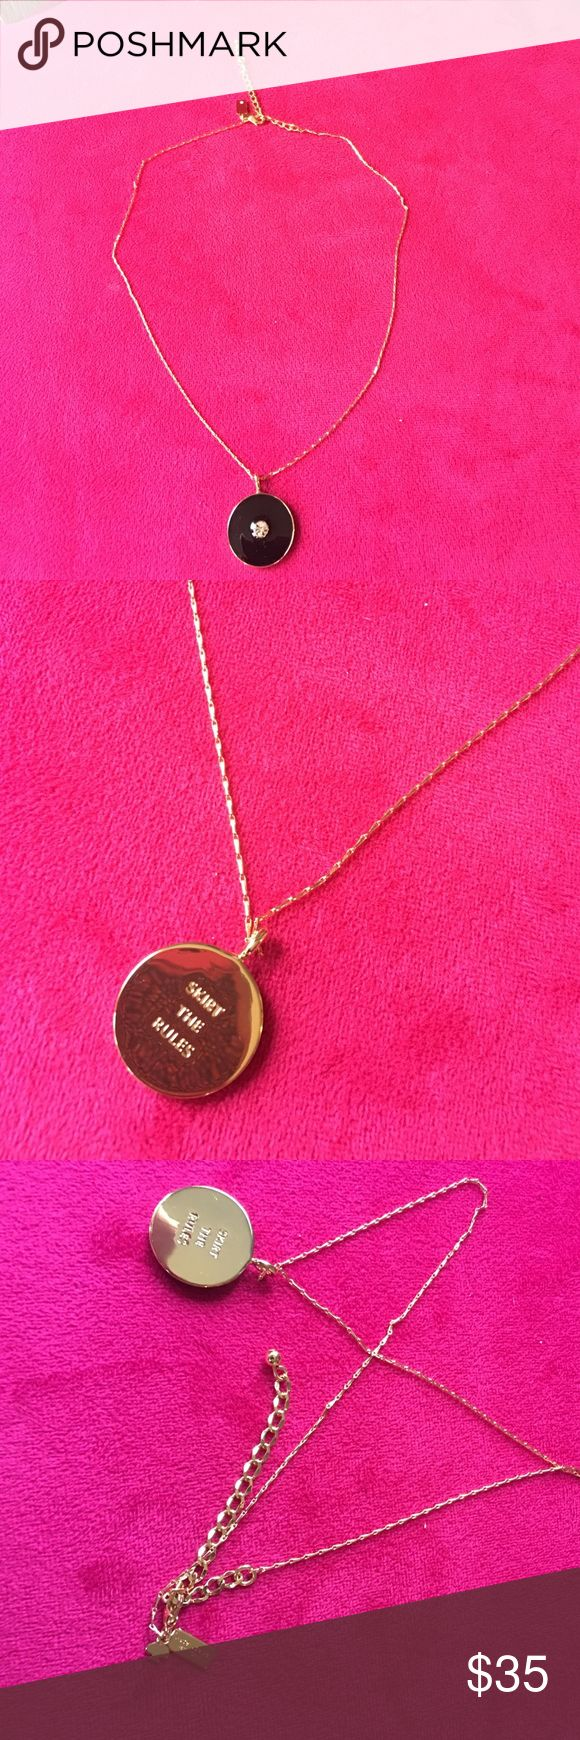 Kate Spade black enamel necklace Black enamel reversible SKIRT THE RULES necklace w gold chain. Excellent condition! kate spade Jewelry Necklaces